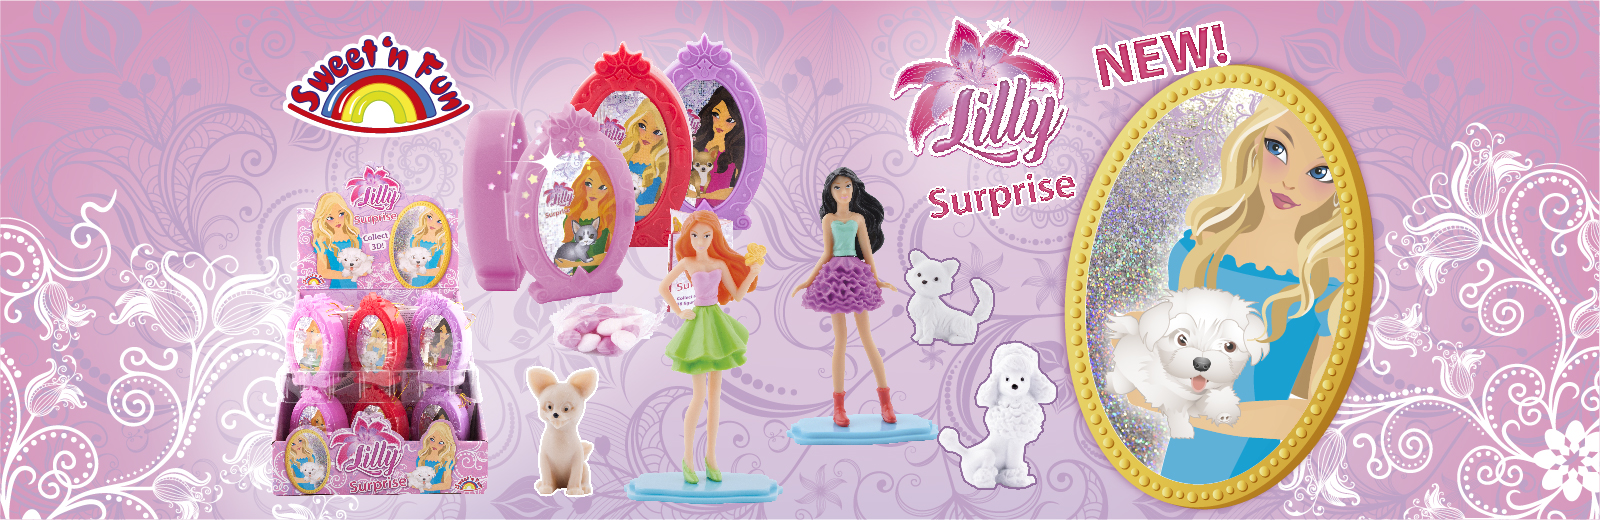 slide /fotky29847/slider/banner-lilly-01.jpg